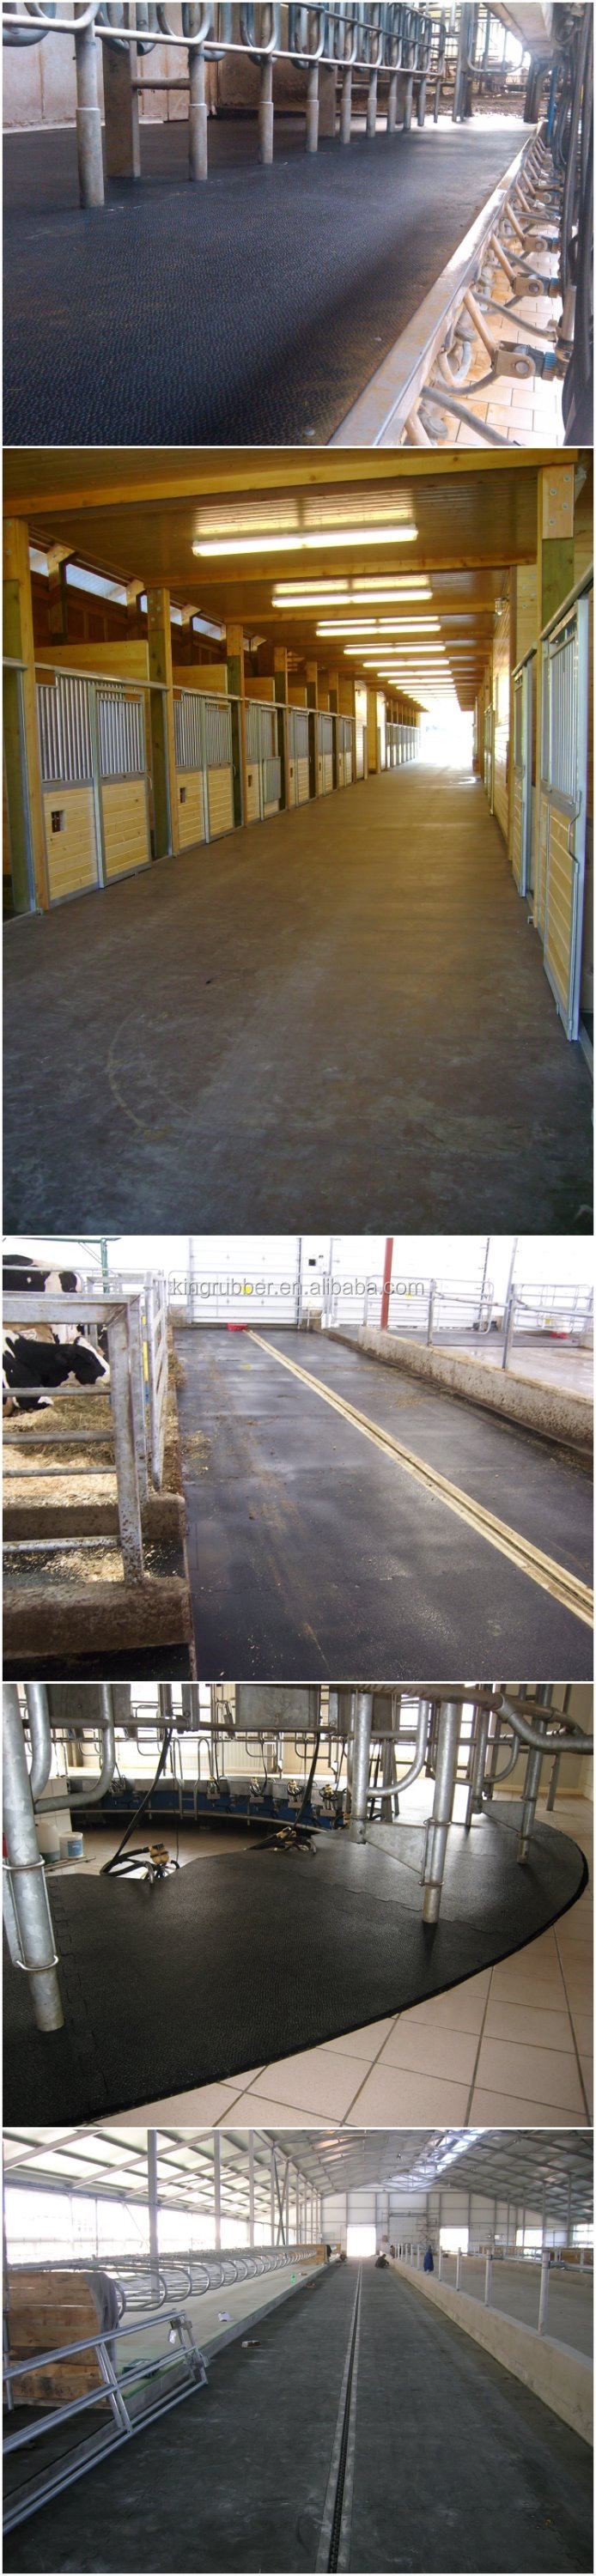 rubber mats for horses